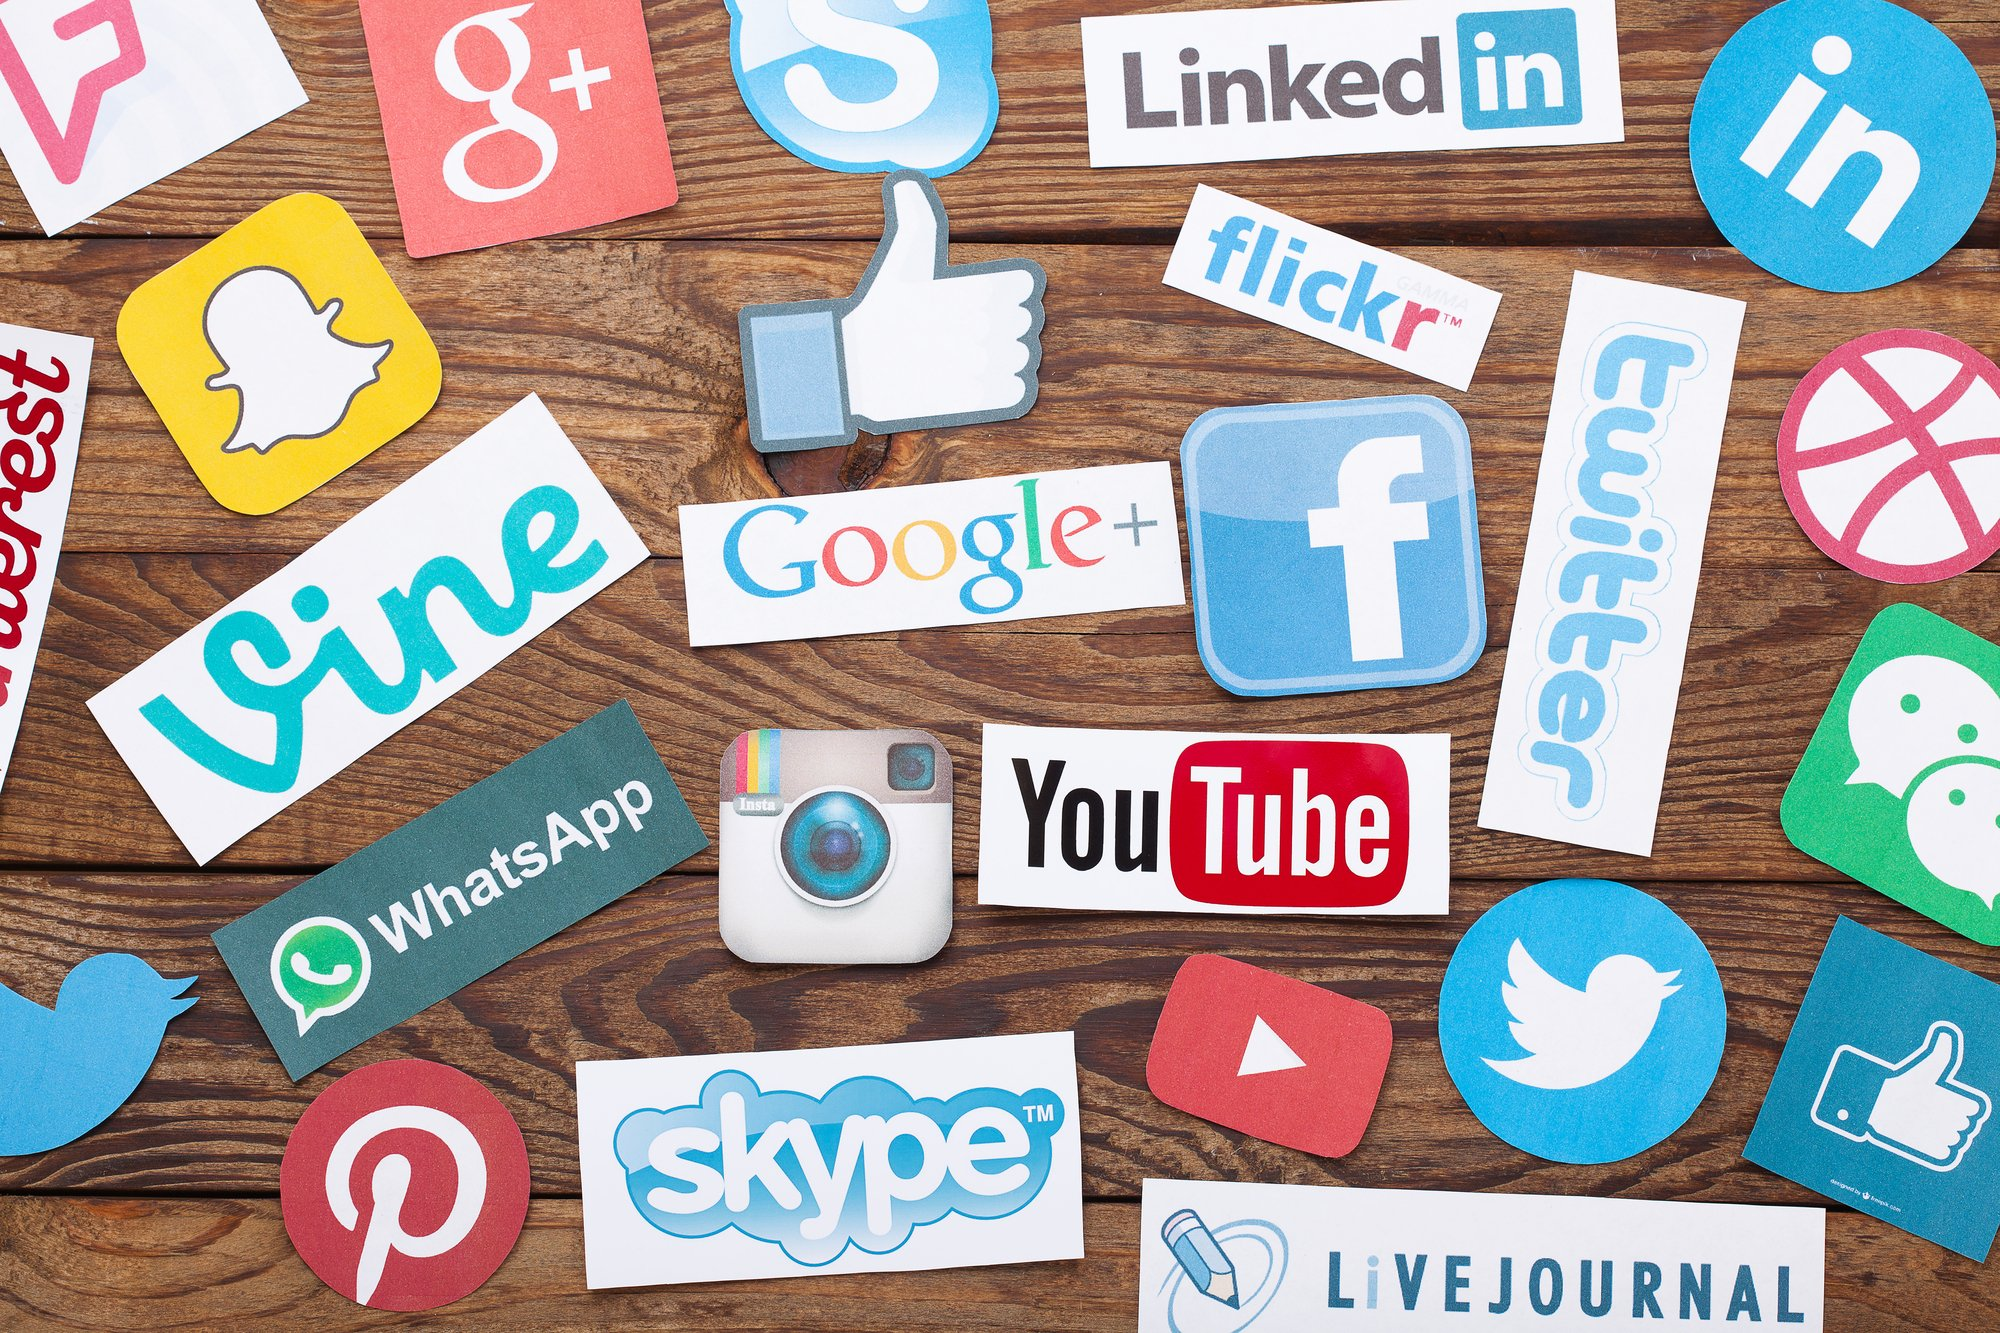 Social Media and Eating Disorders: Making Screen Time More Positive